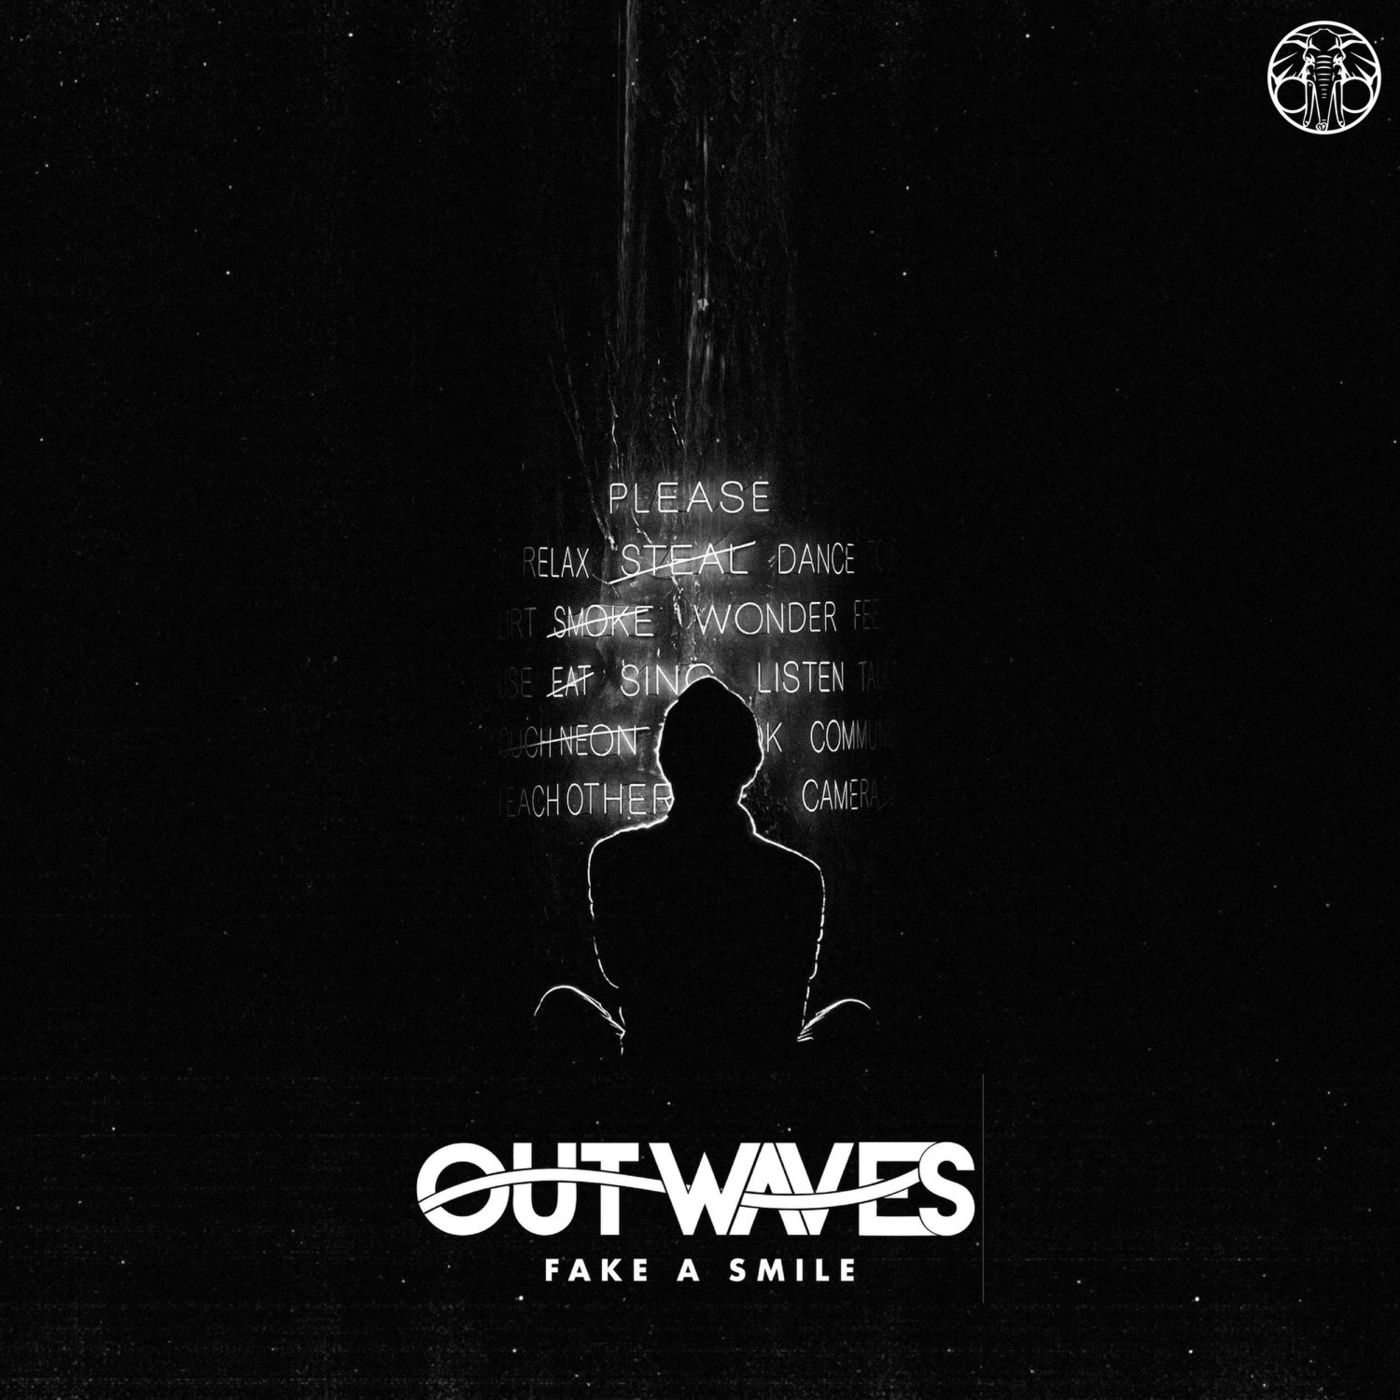 Outwaves - Fake a Smile [EP] (2019)